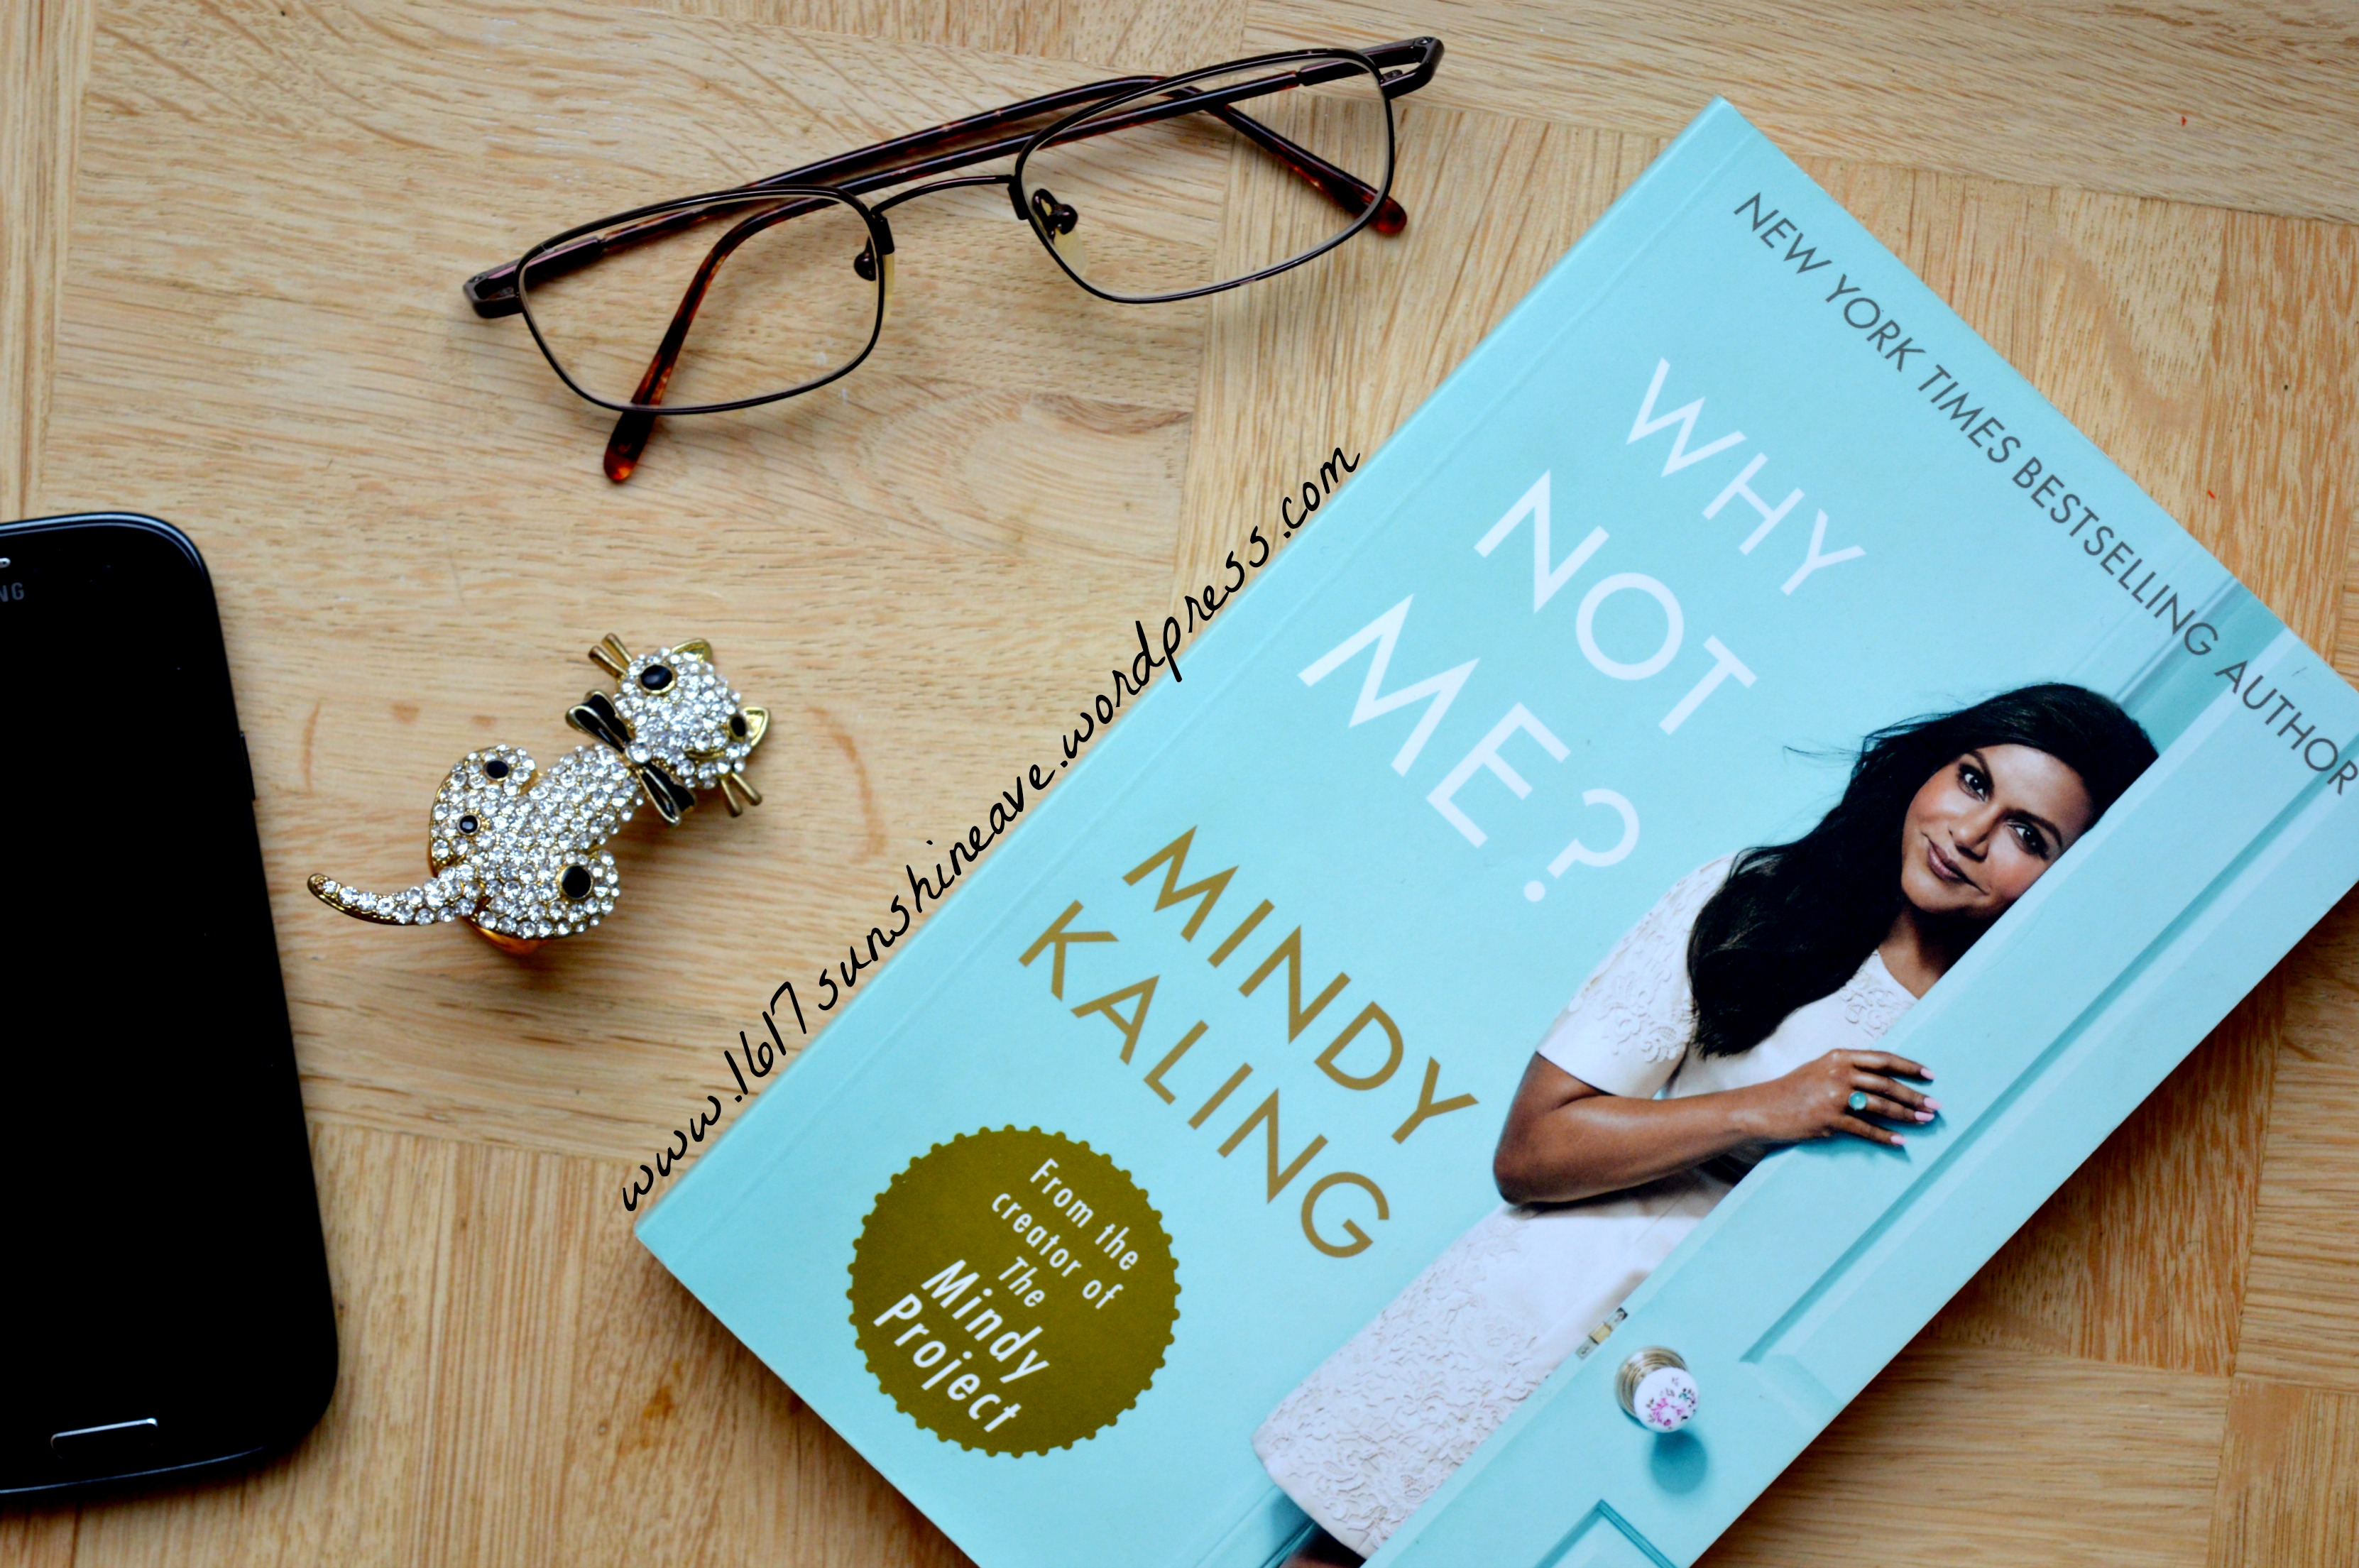 Why Not Me By Mindy Kaling Book Review Sunshine In Wanderland